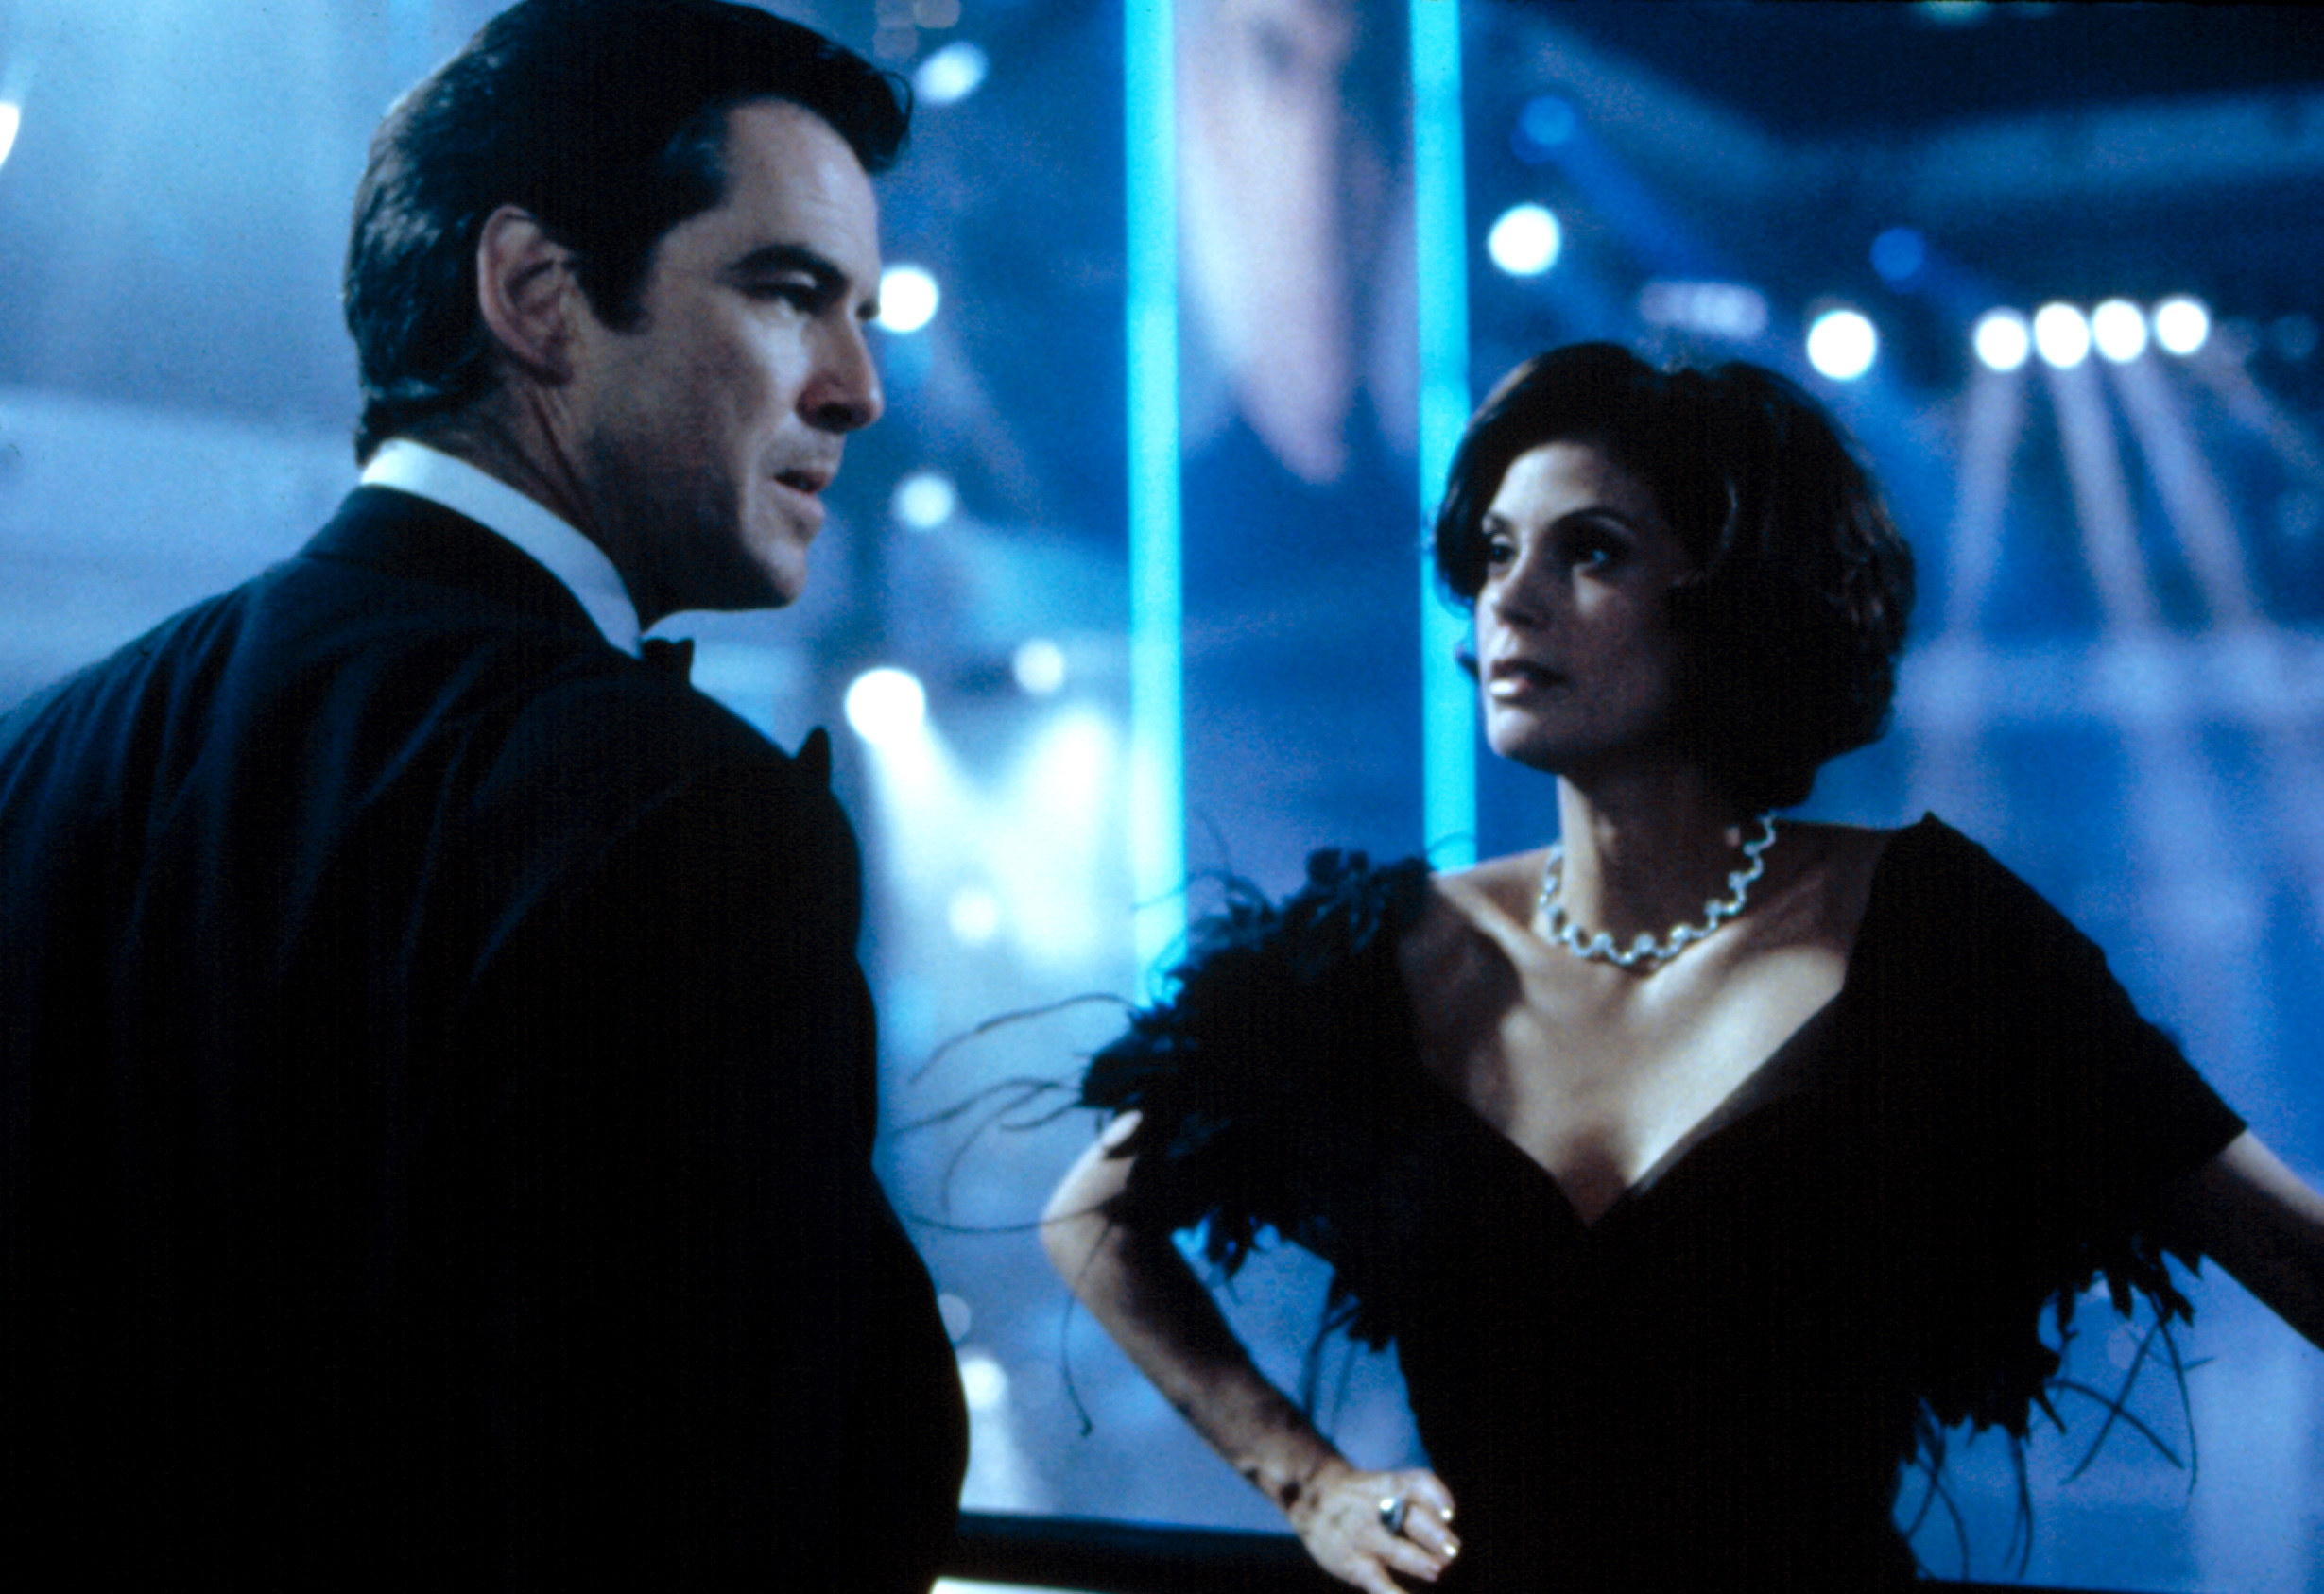 Bond and Paris in a confrontation